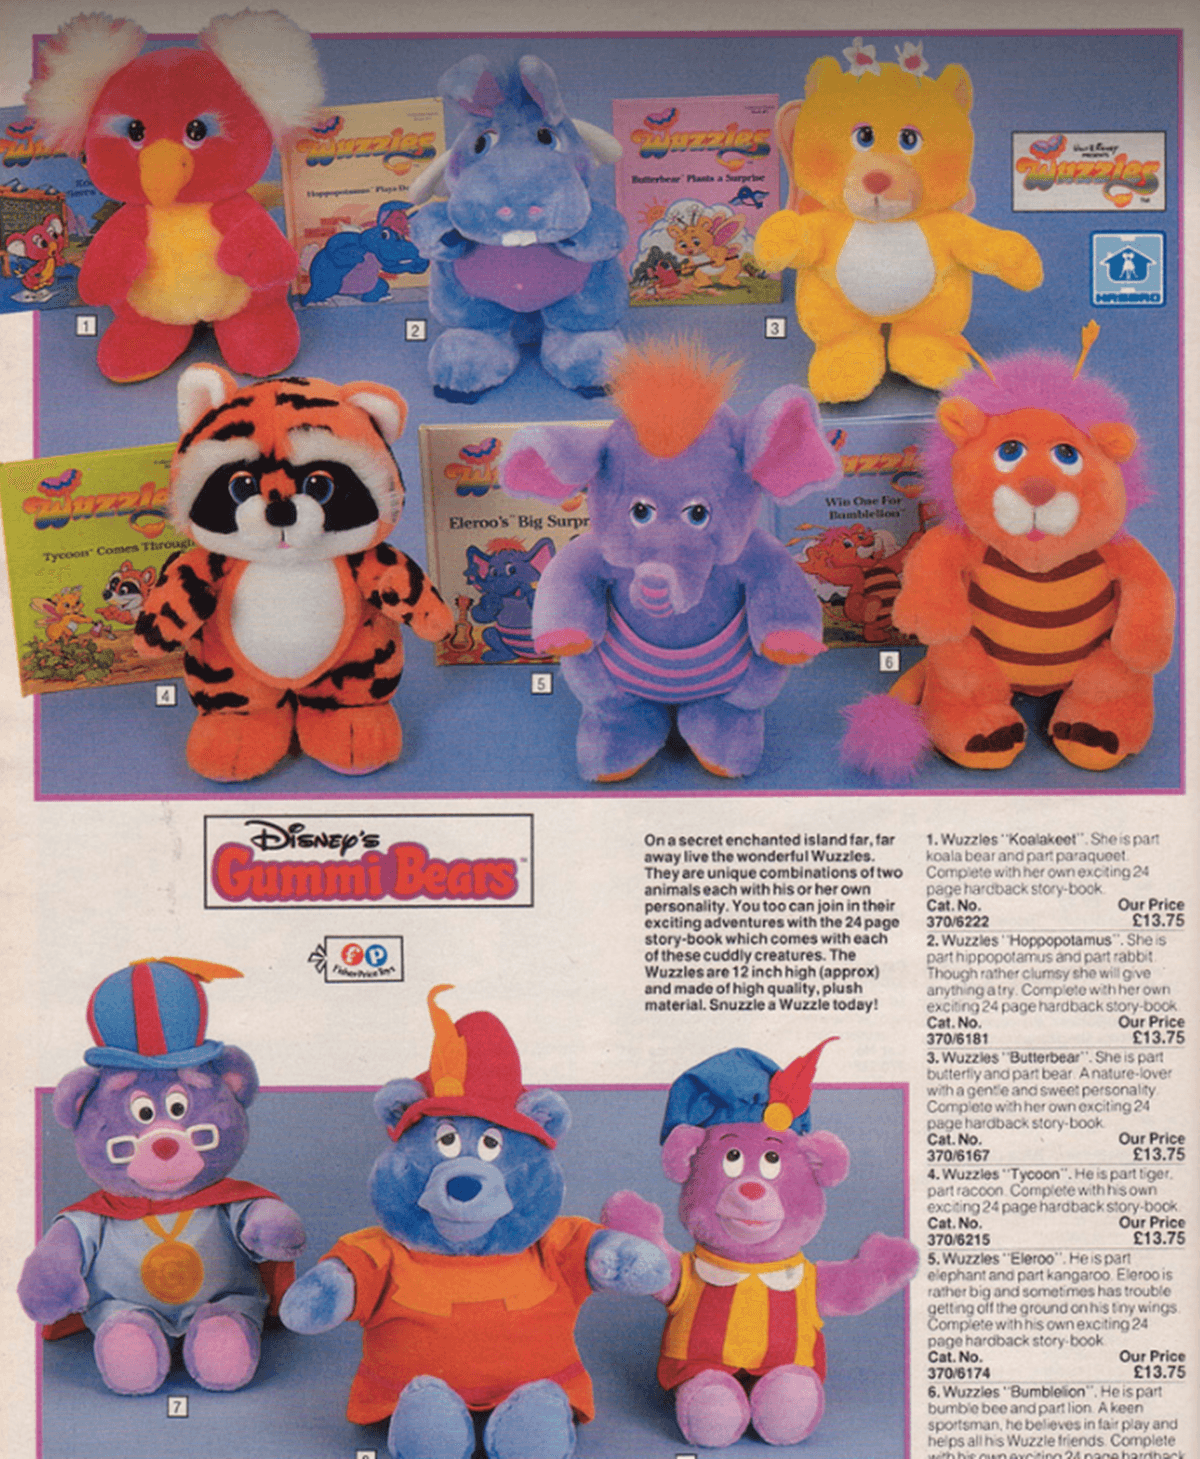 12 Take A Look Inside An Argos Catalogue From 1986!